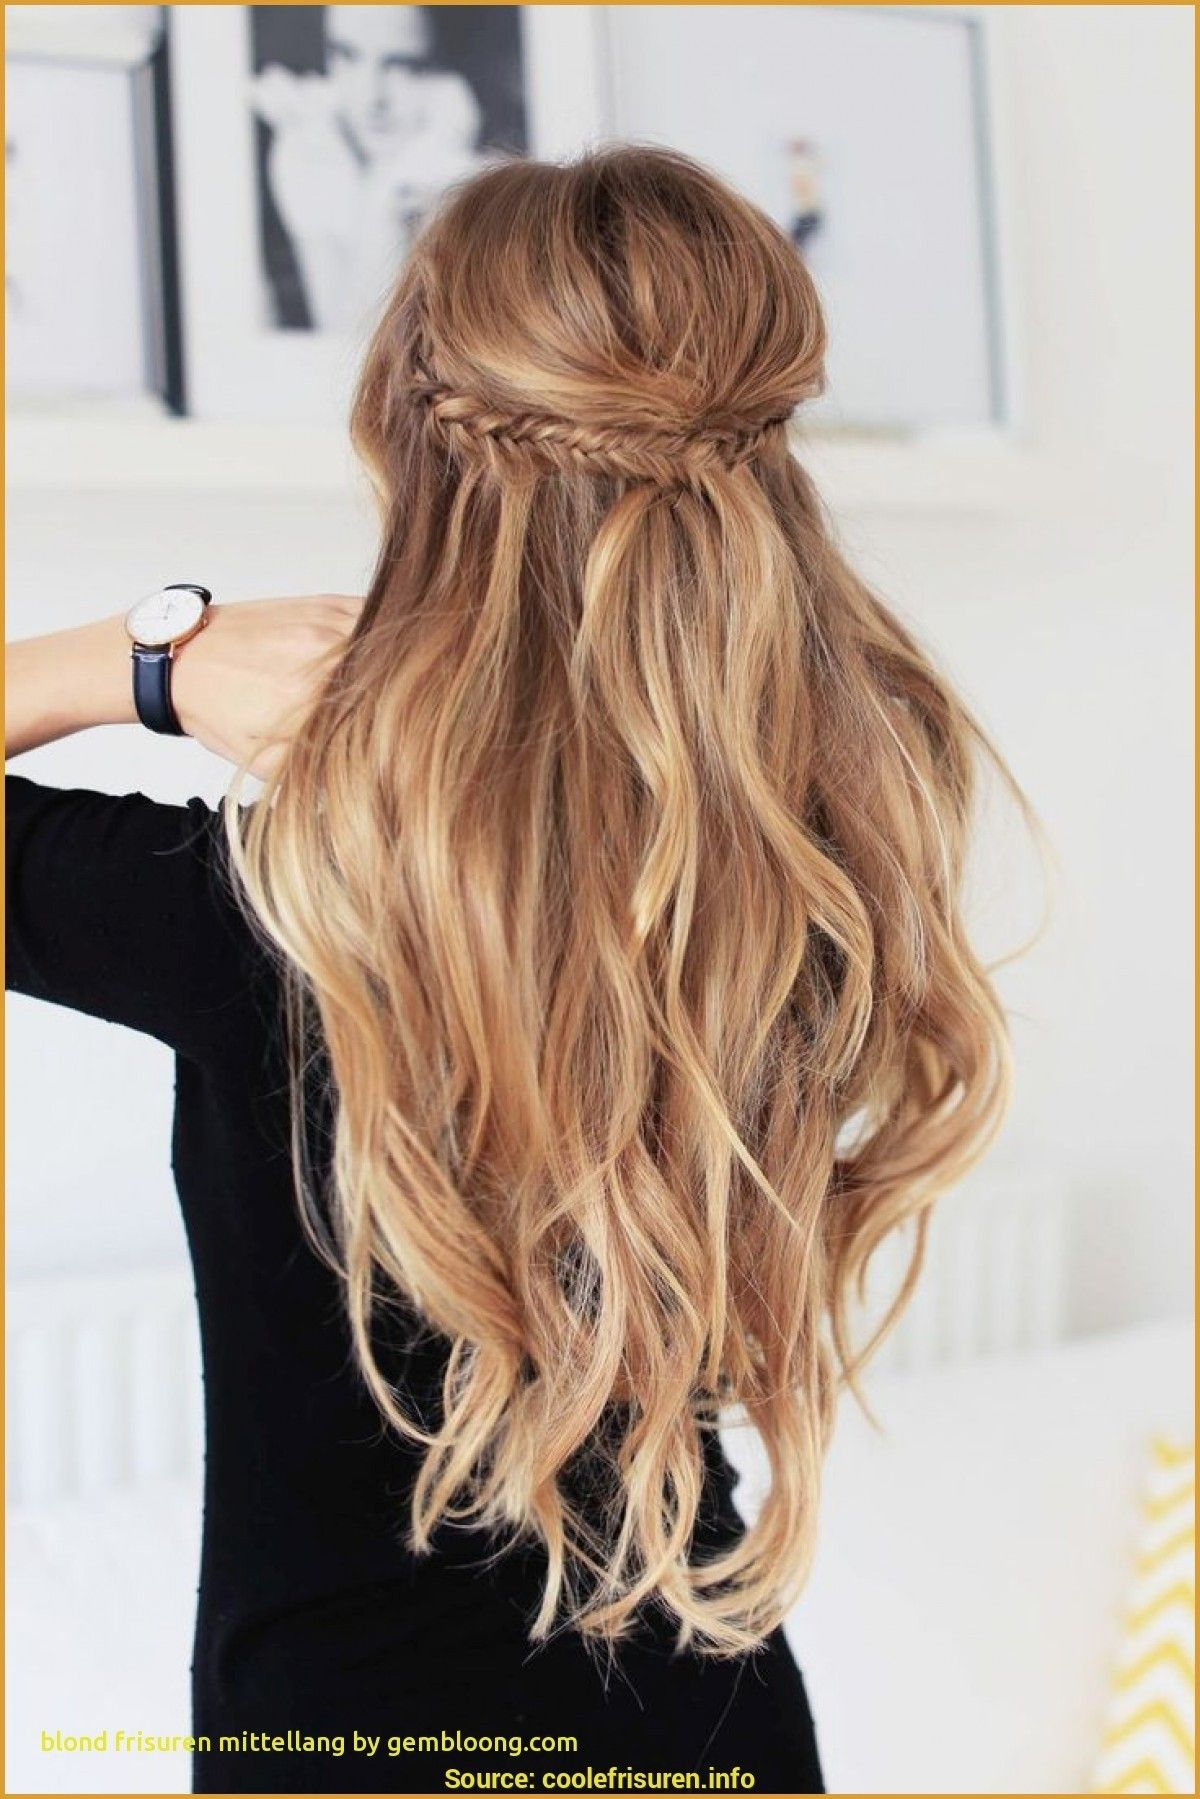 Frisuren Lange Haare Hochzeitsgast Medium Hair Styles Medium Length Hair Styles Hair Styles